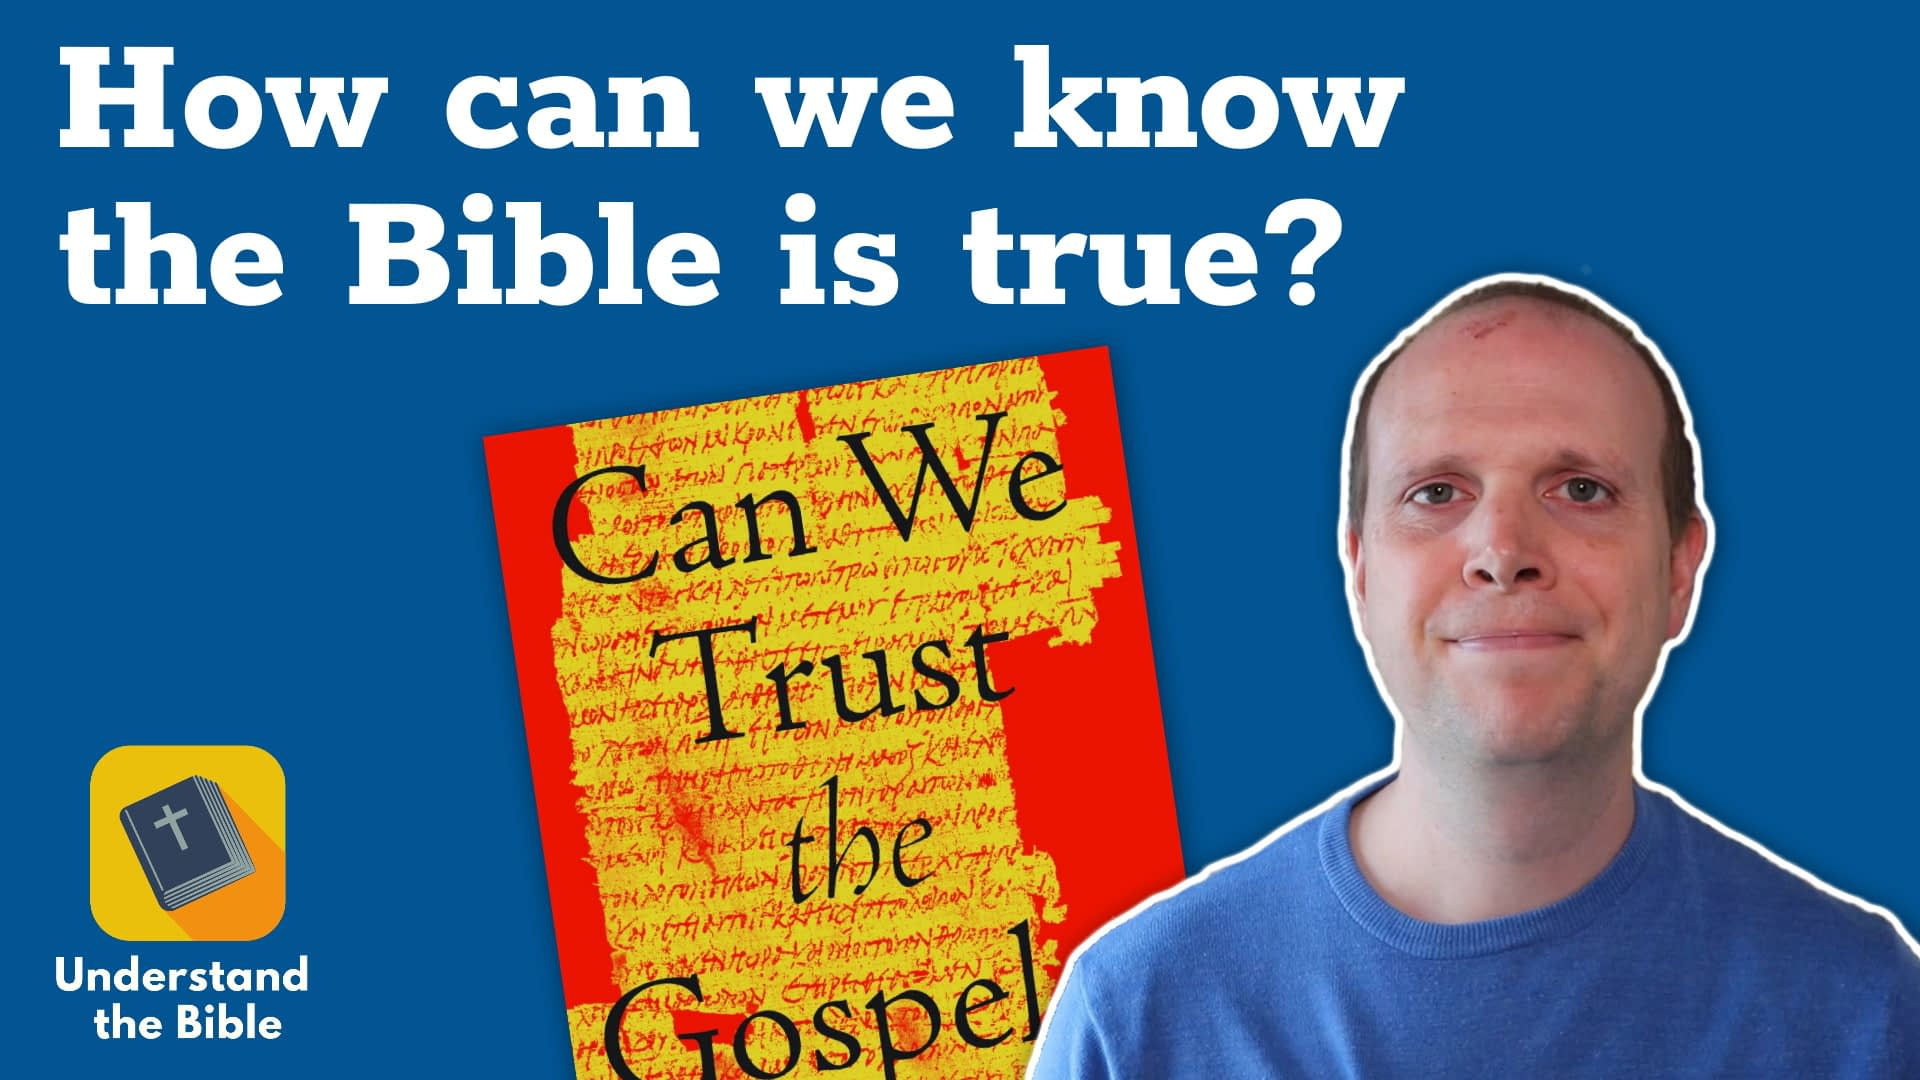 How can we know the Bible is true?